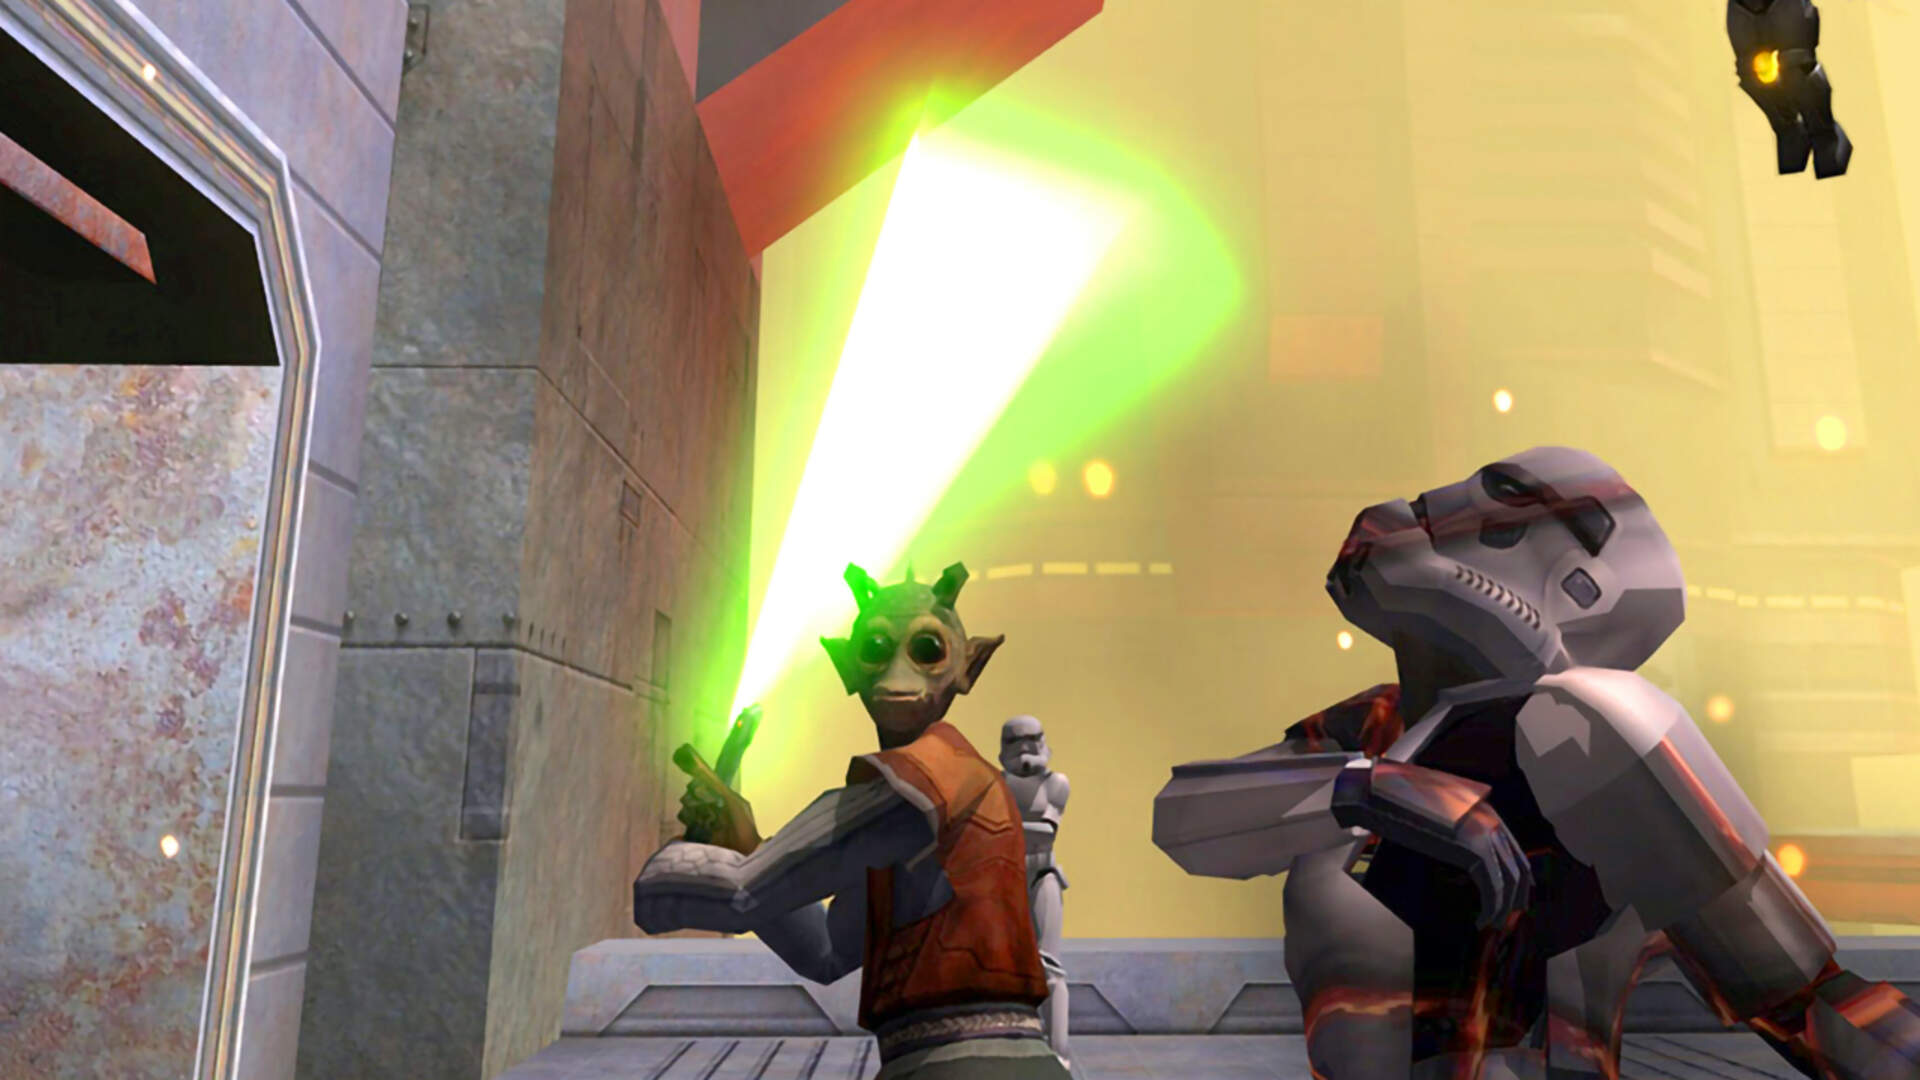 A Fix Is Coming to Split Jedi Academy's PC and Console Players Back Up